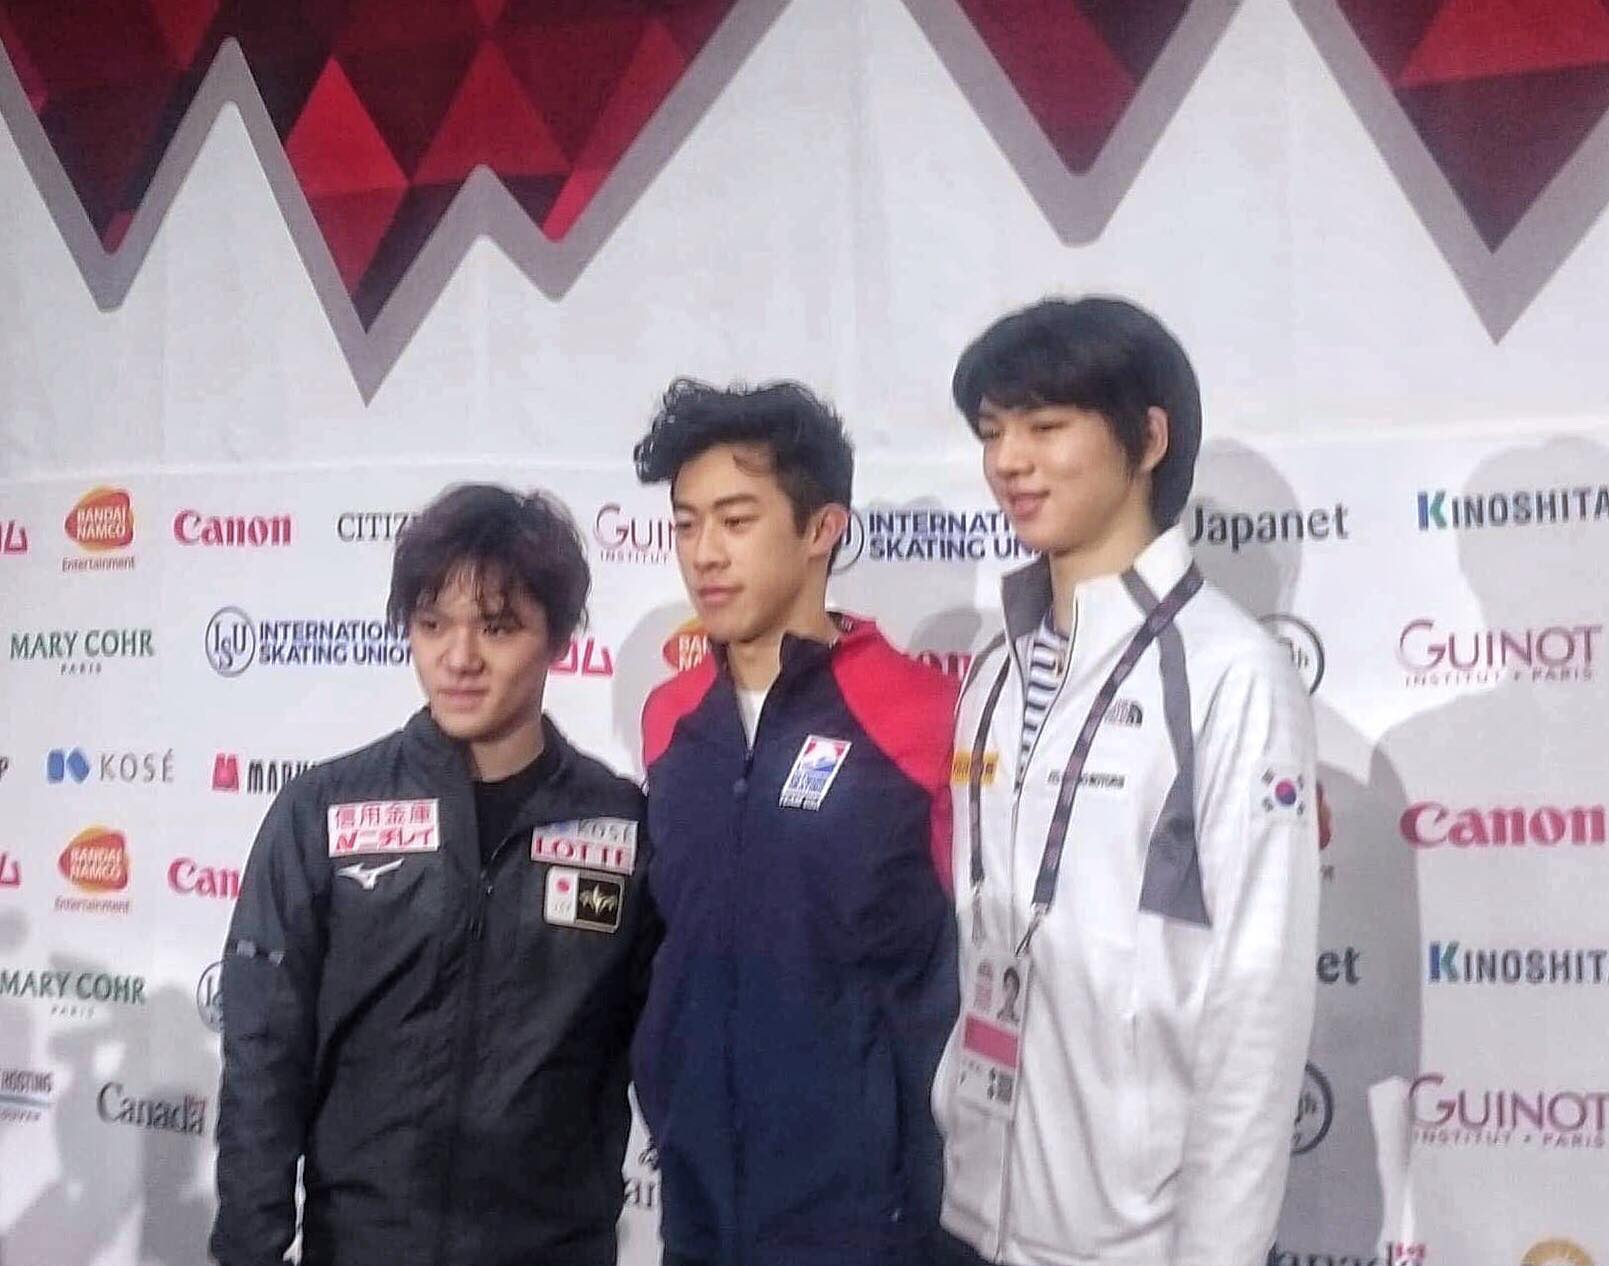 The medalists for the men's Grand Prix.